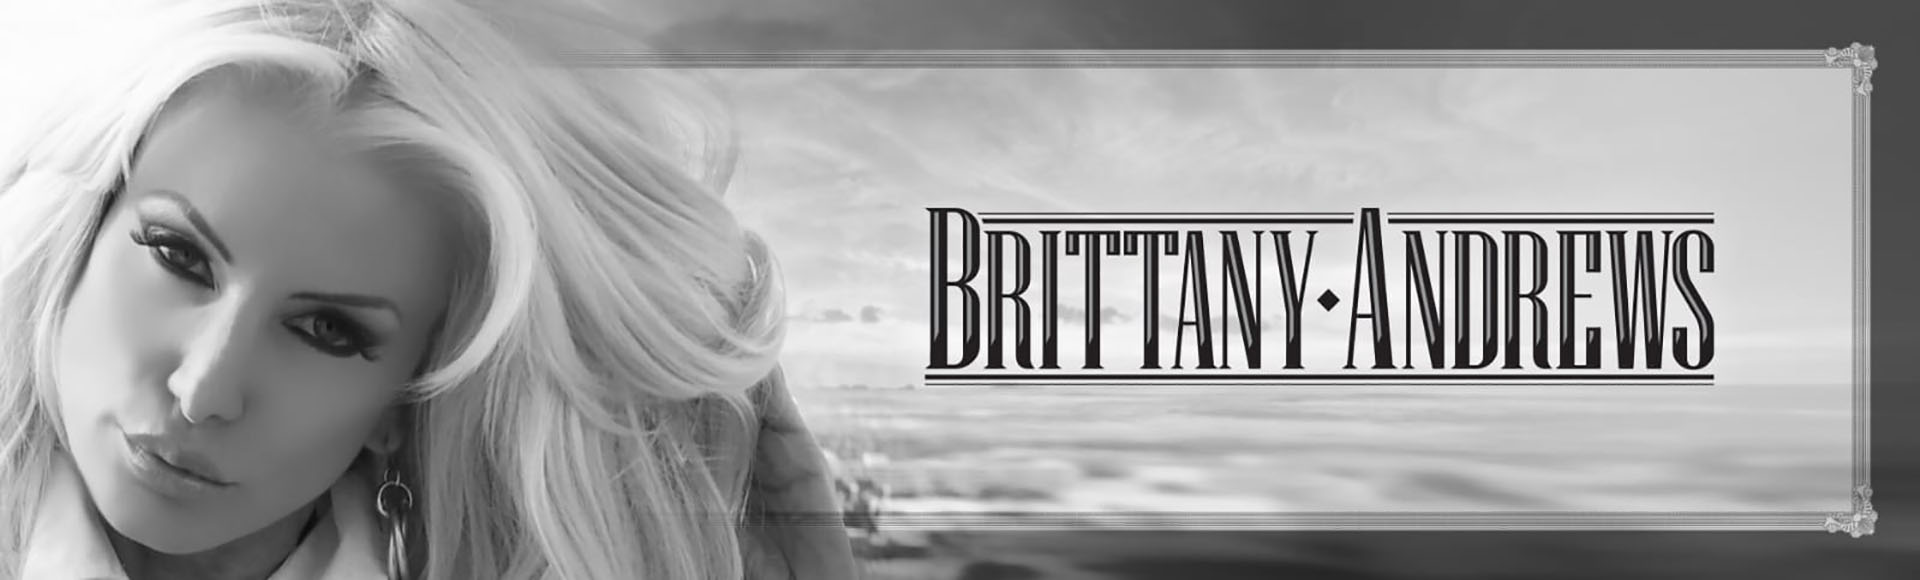 Brittany Andrews Official Site